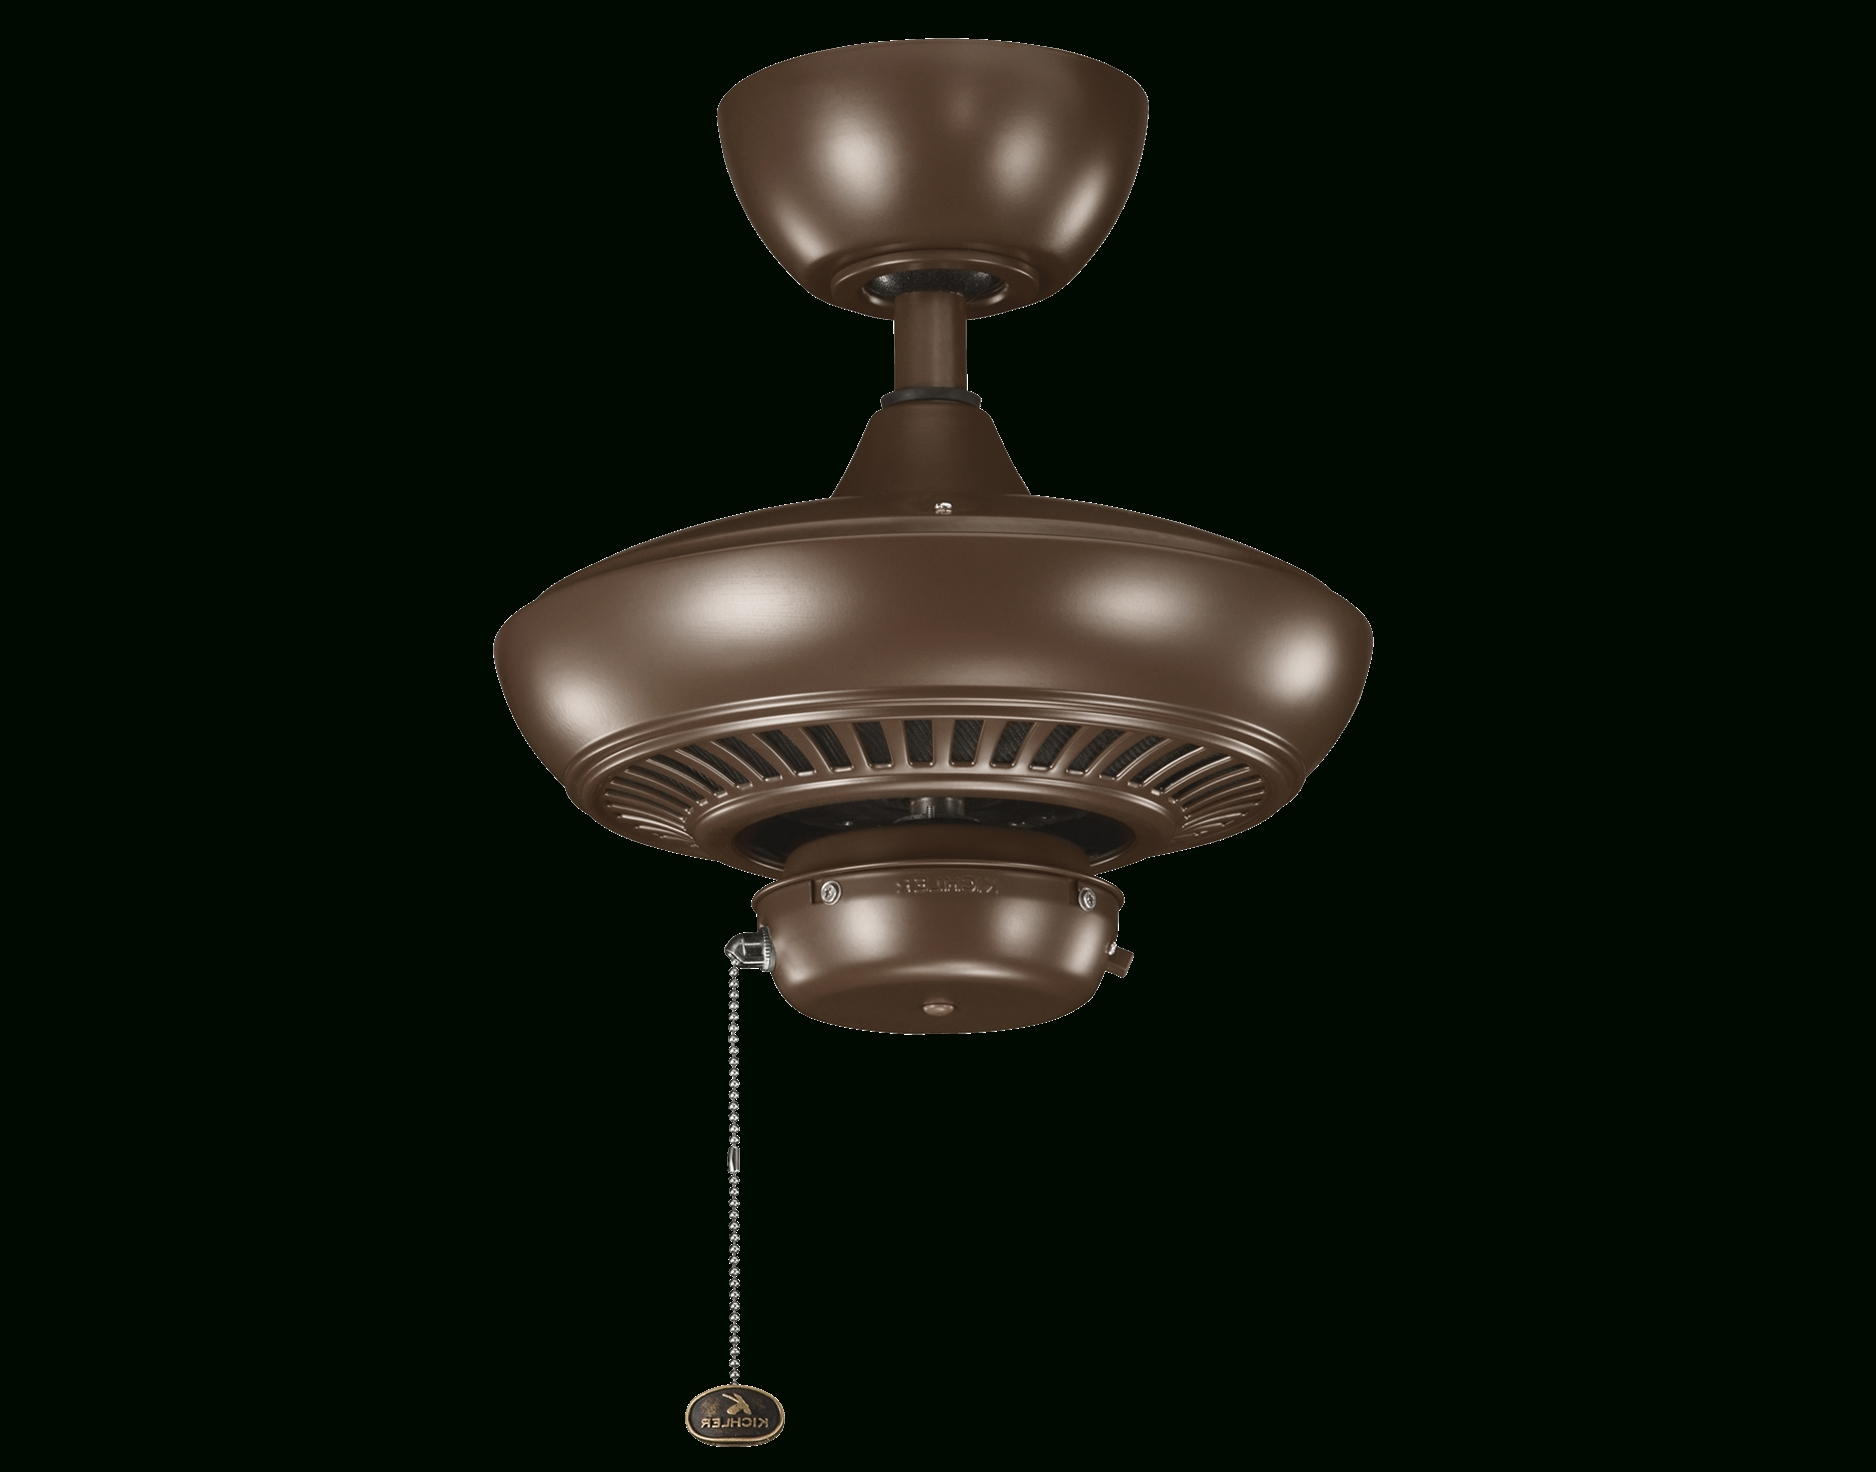 Outdoor Ceiling Fans With Pull Chains Throughout Most Up To Date Awesome Outdoor Ceiling Light With Pull Chain – Divineducation (View 15 of 20)